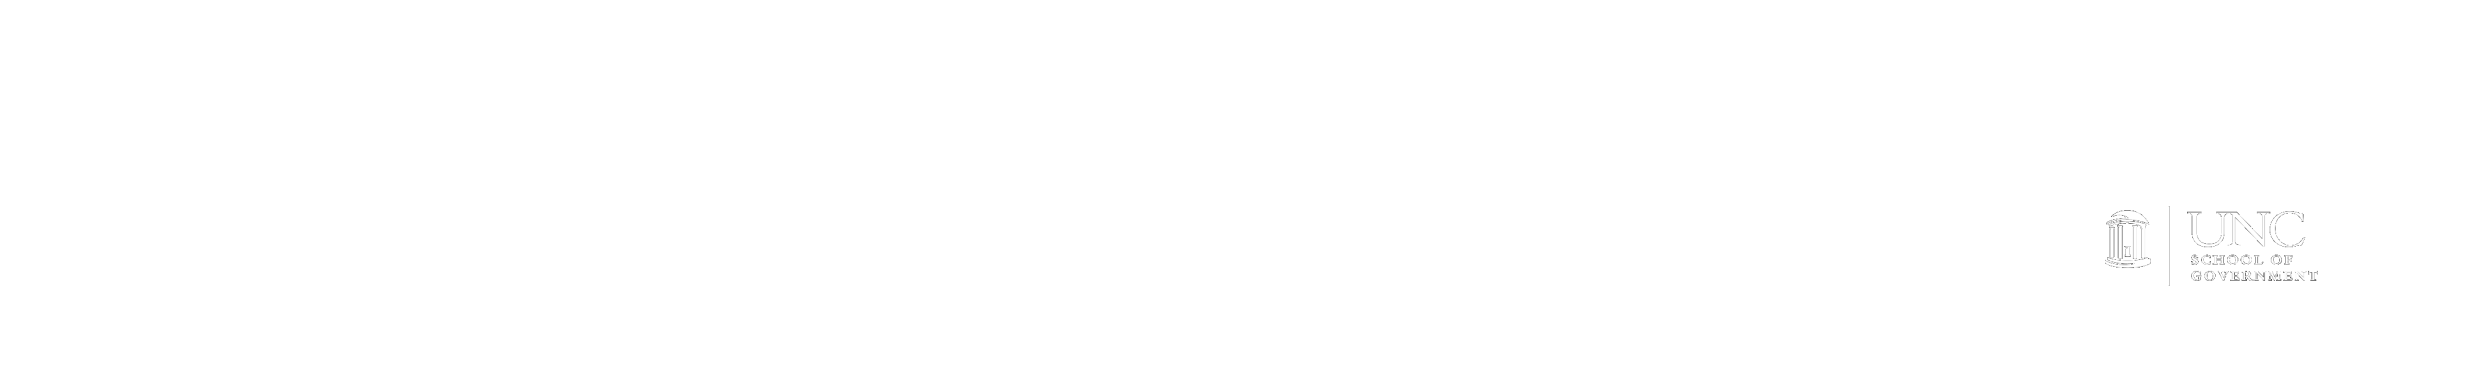 North Carolina Racial Equity Network (NC REN)